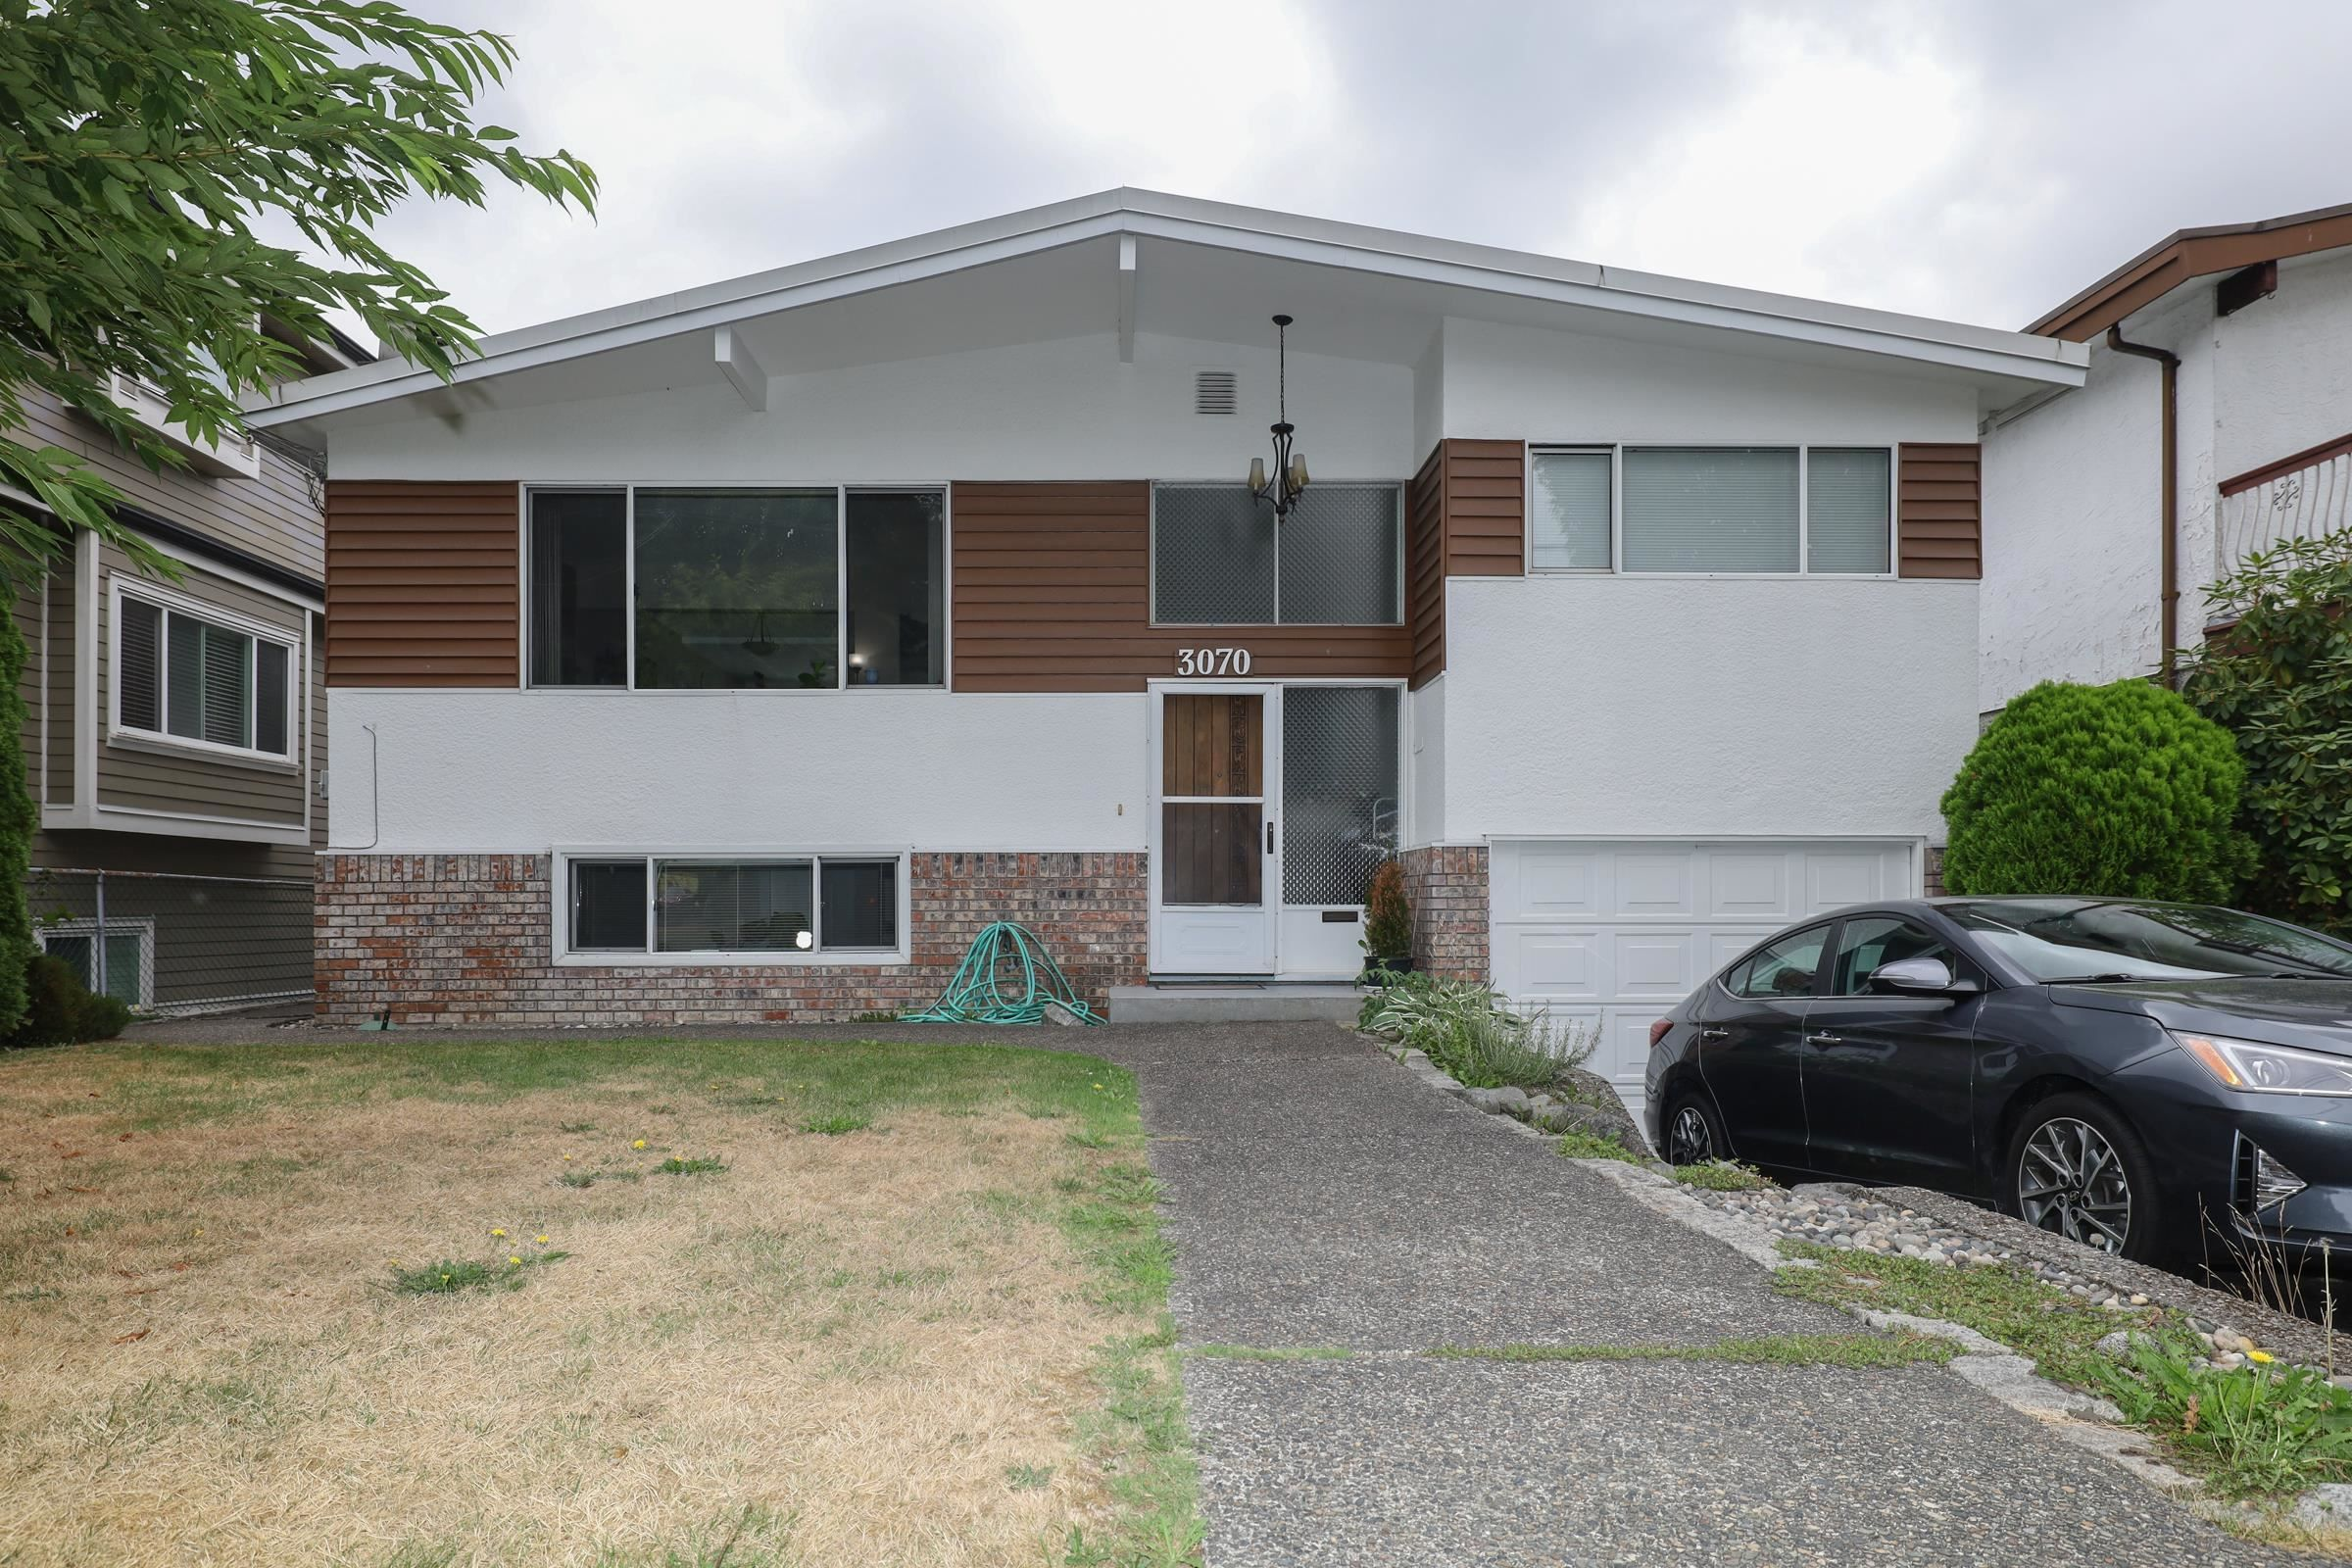 Main Photo: 3070 E 52ND Avenue in Vancouver: Killarney VE House for sale (Vancouver East)  : MLS®# R2611651